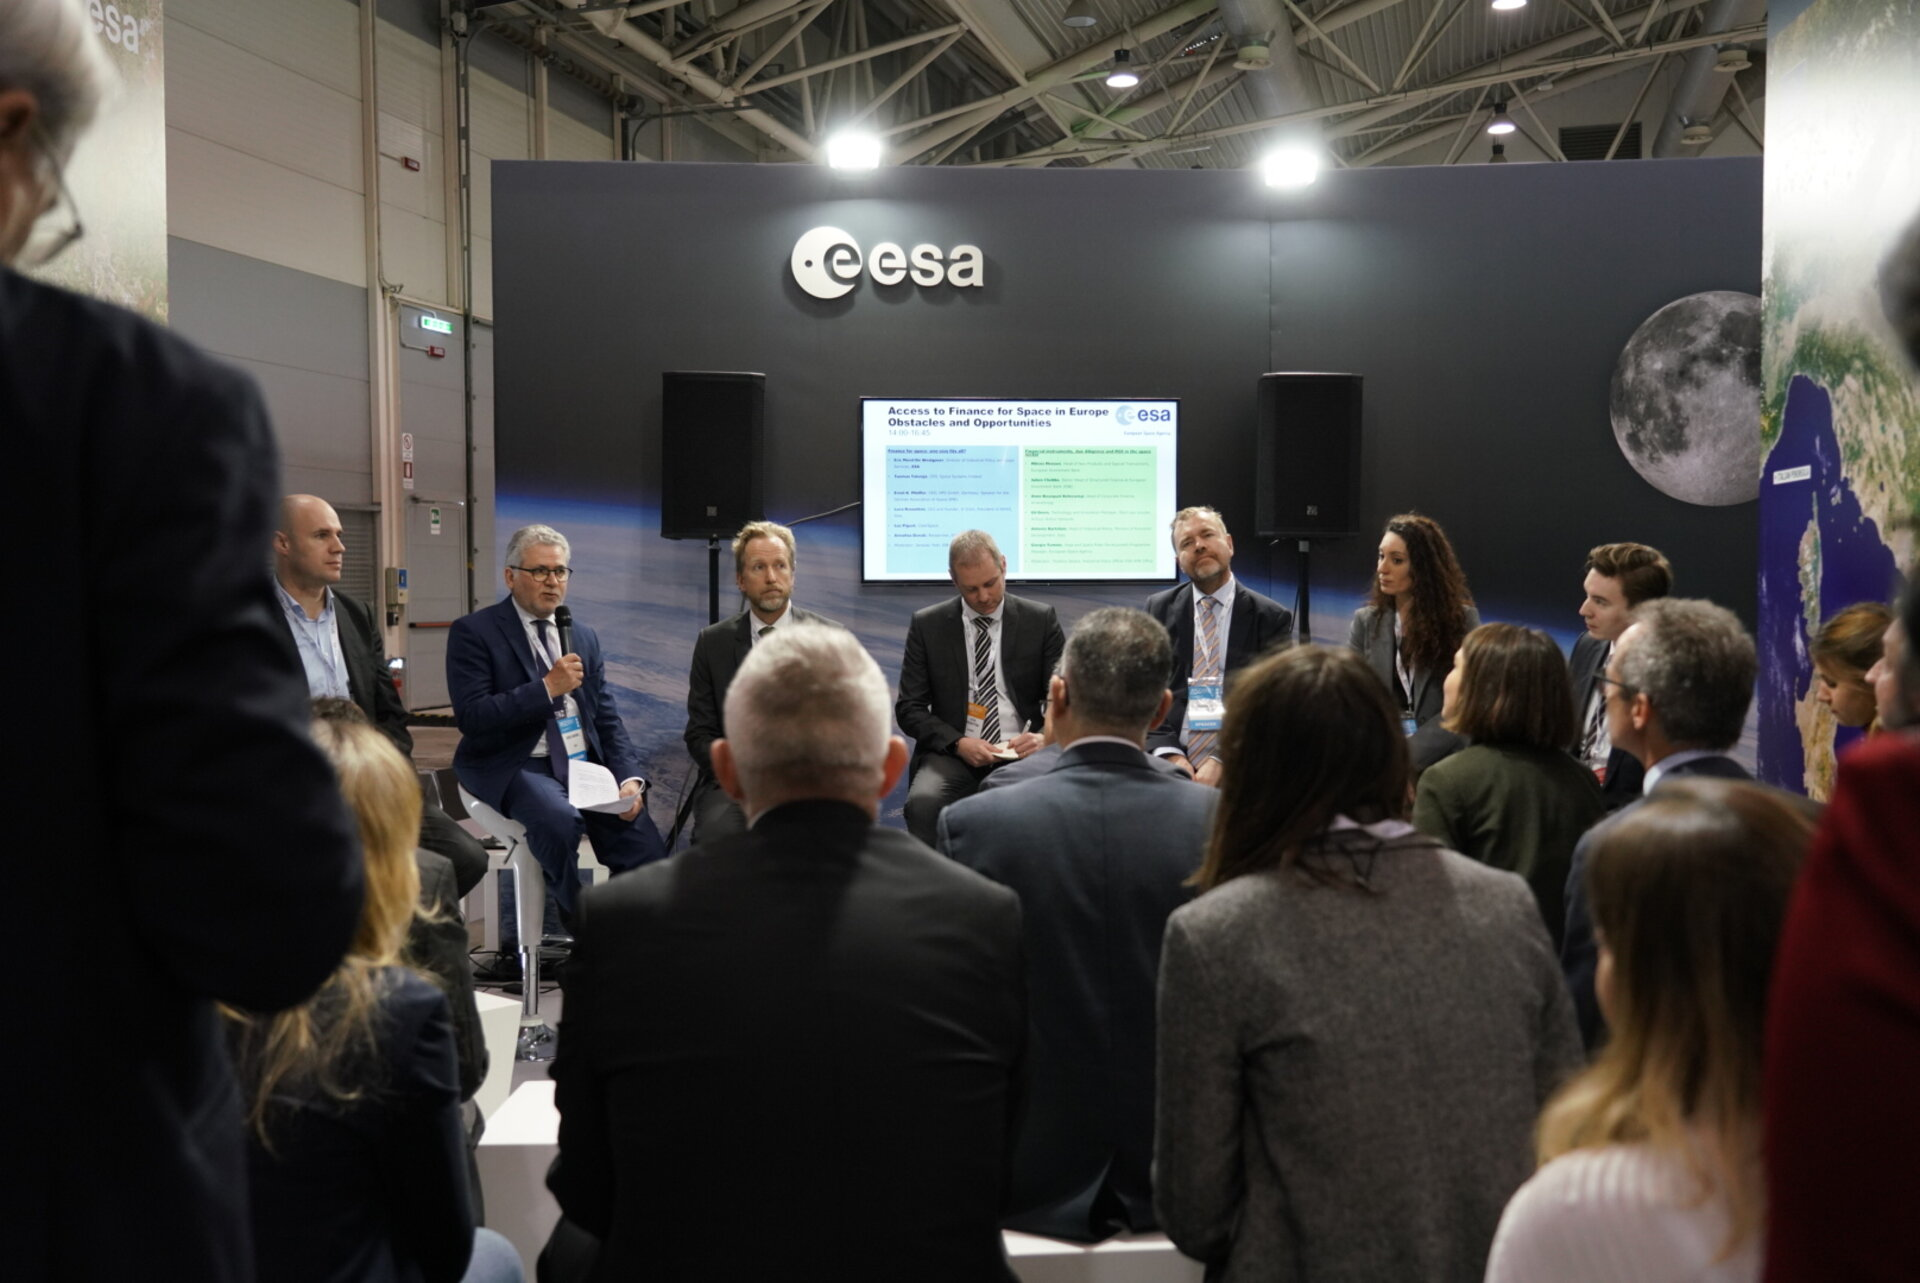 Access to finance for space in Europe